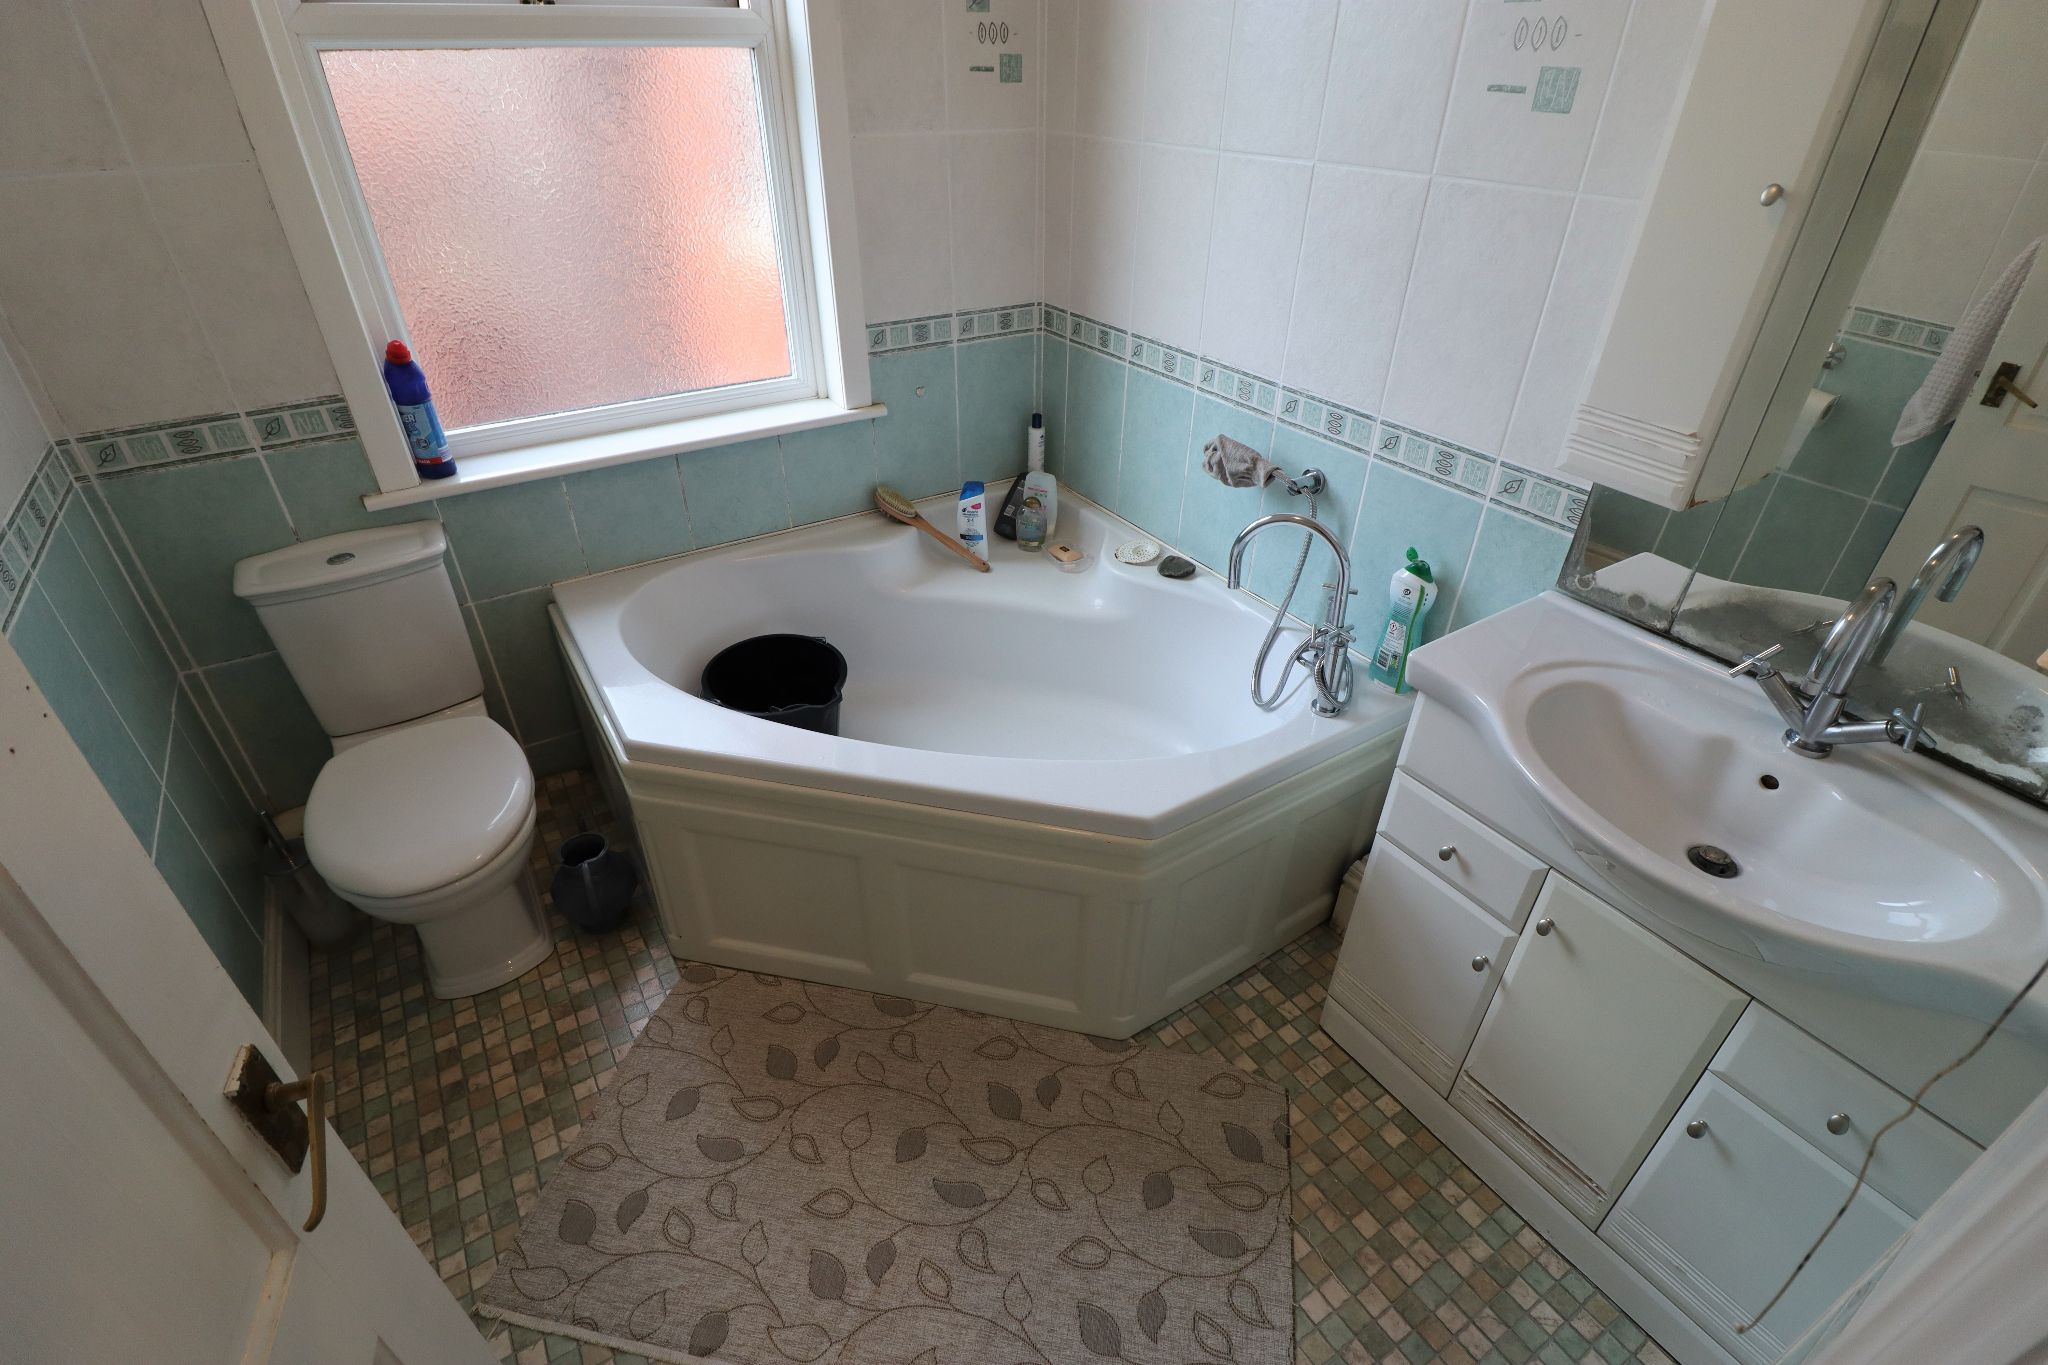 6 Bedroom Semi-detached House For Sale - Photograph 9